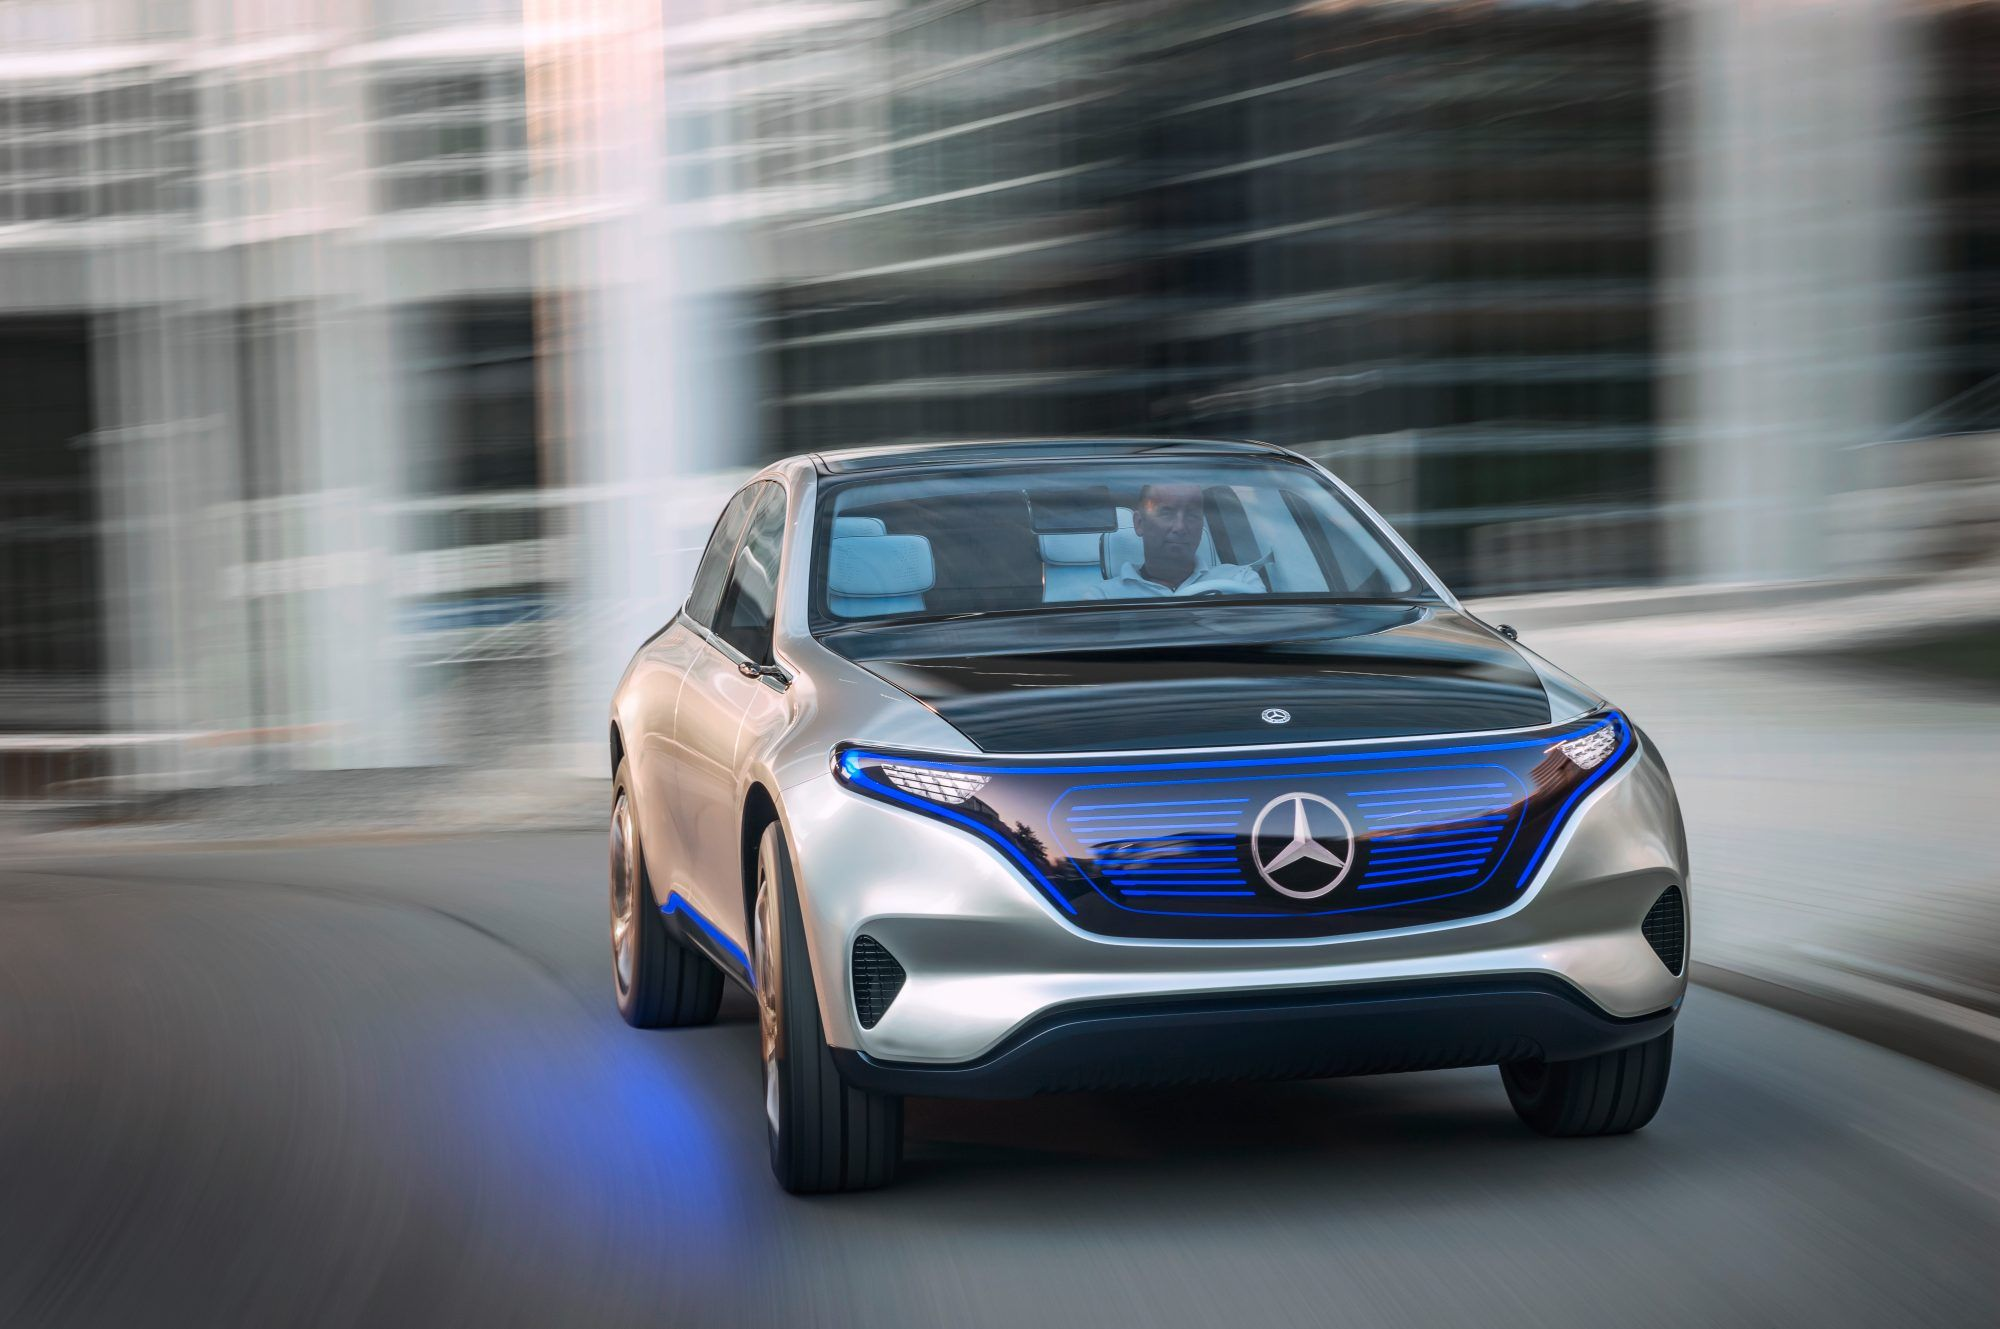 Daimler is investing $735 million in China's EV infrastructure | Car